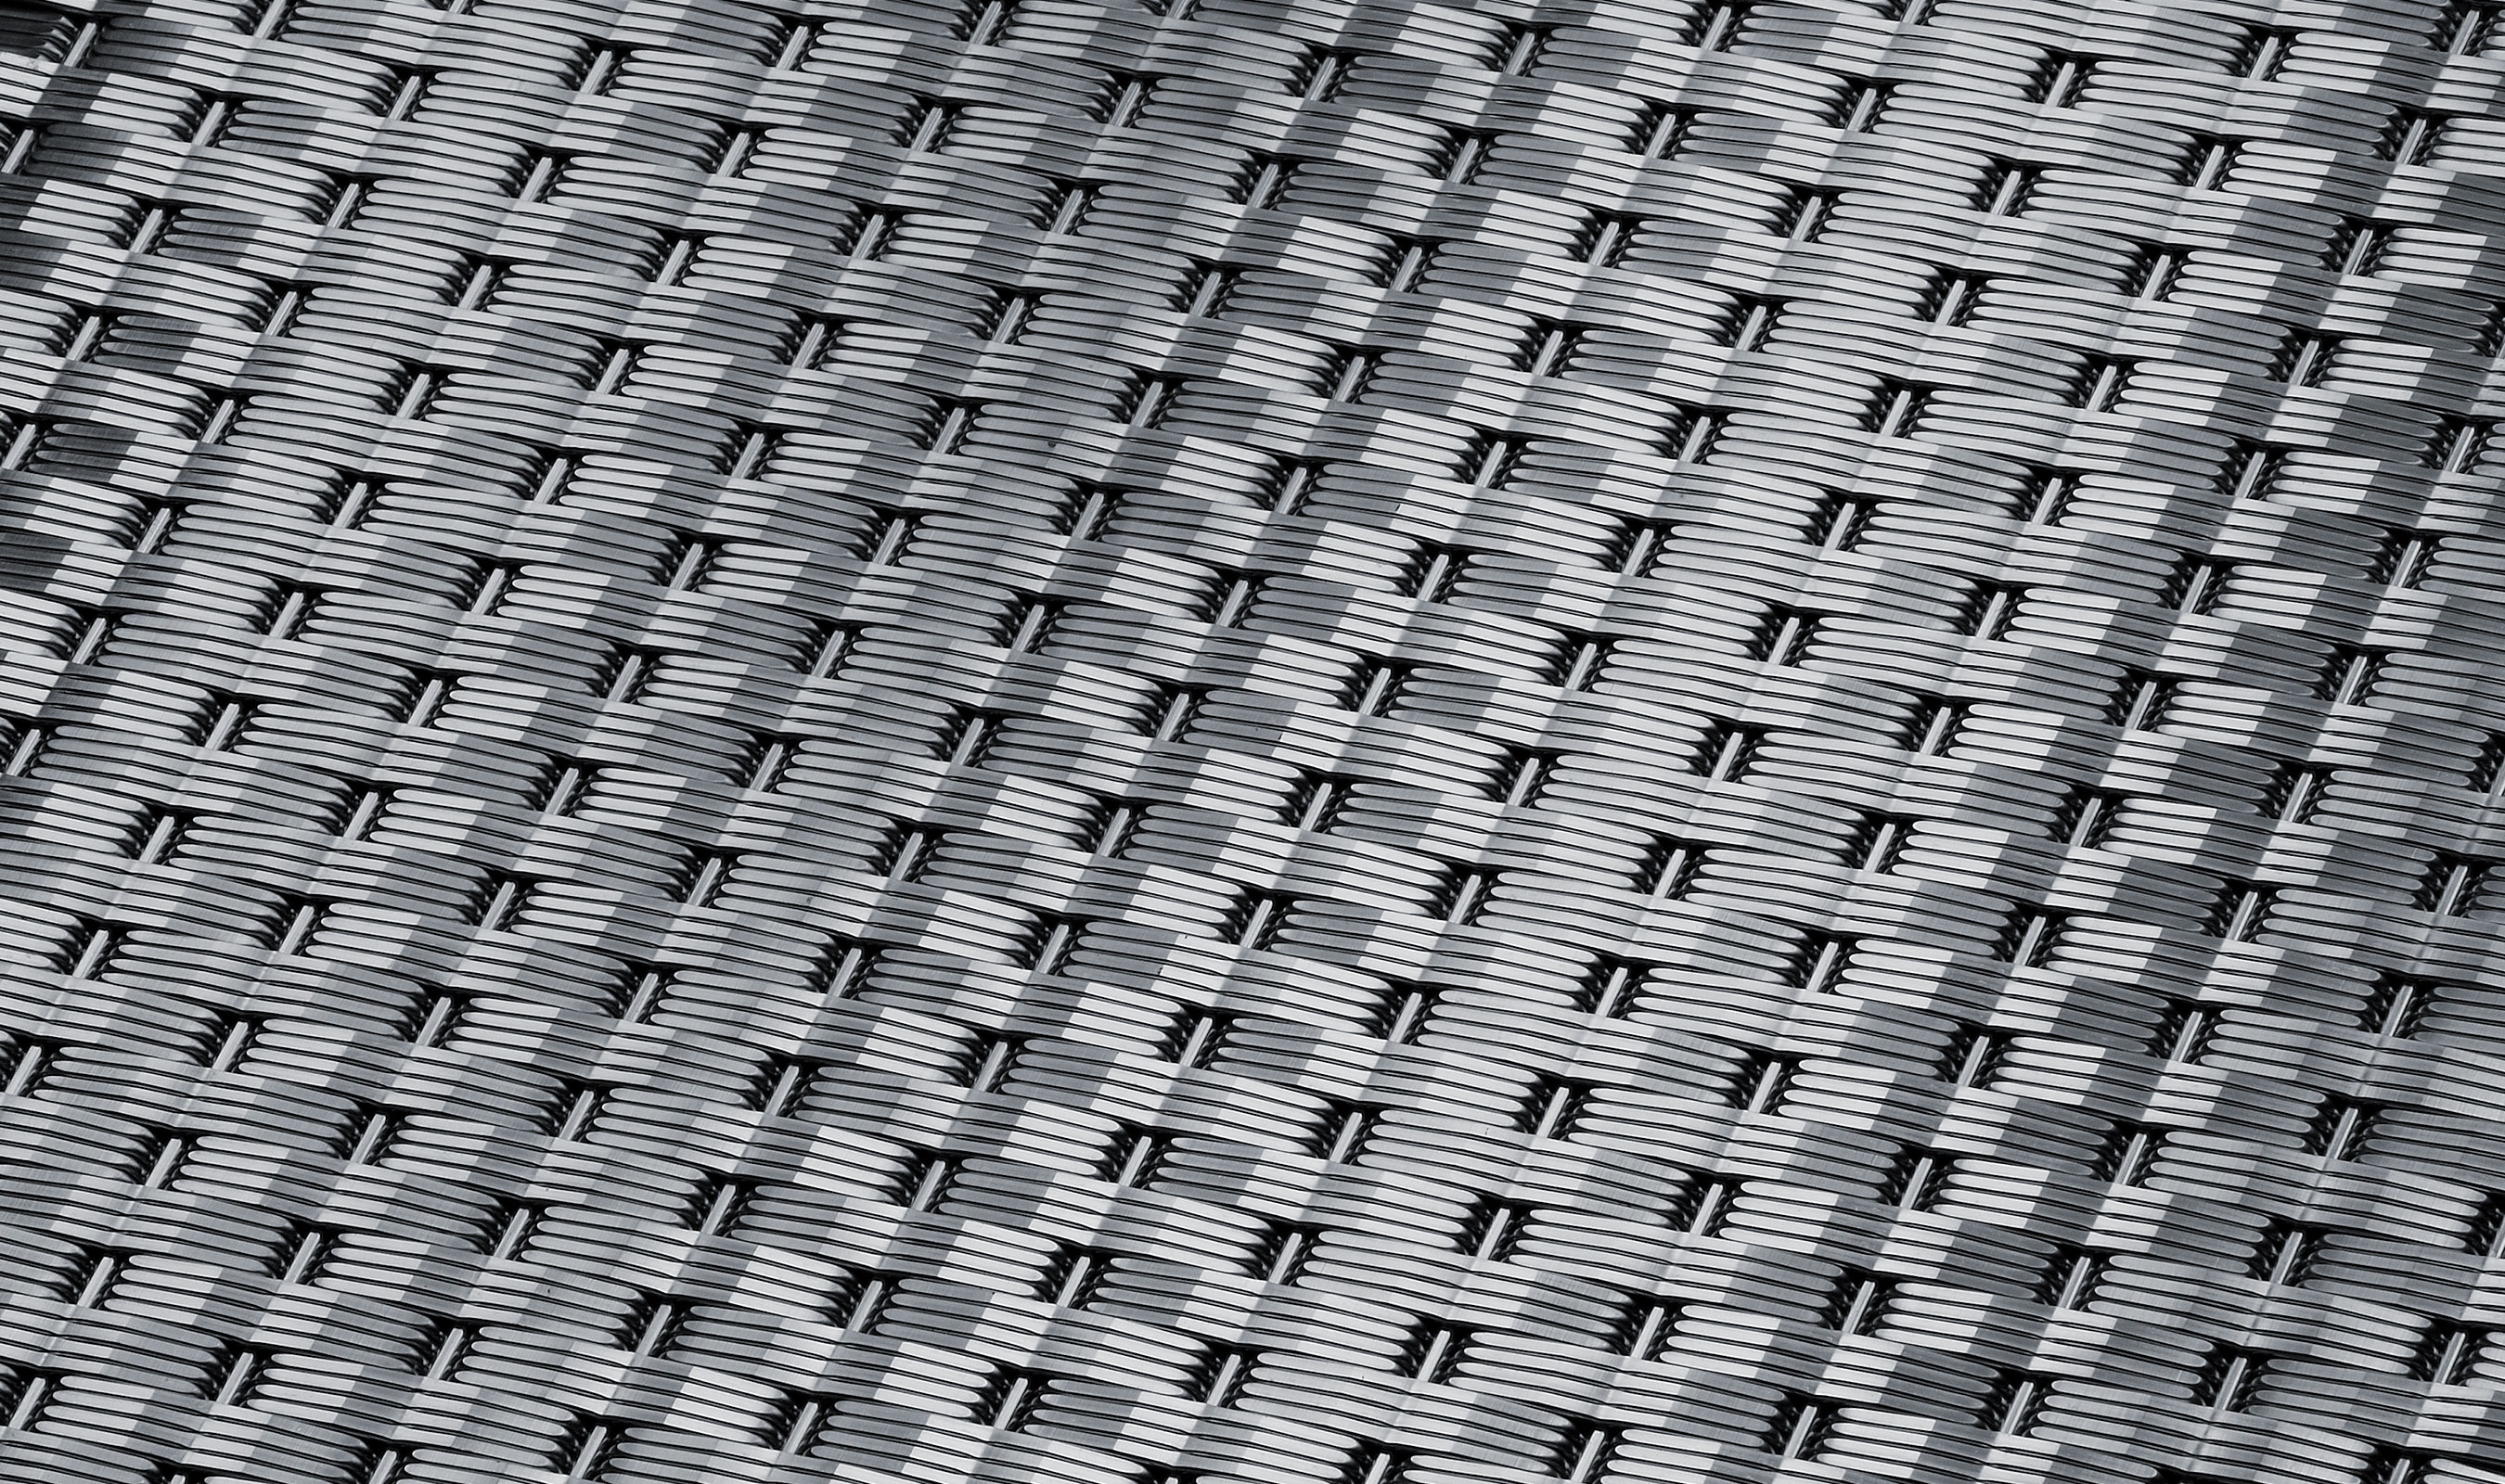 DF-8 in Stainless Woven Wire Mesh finish